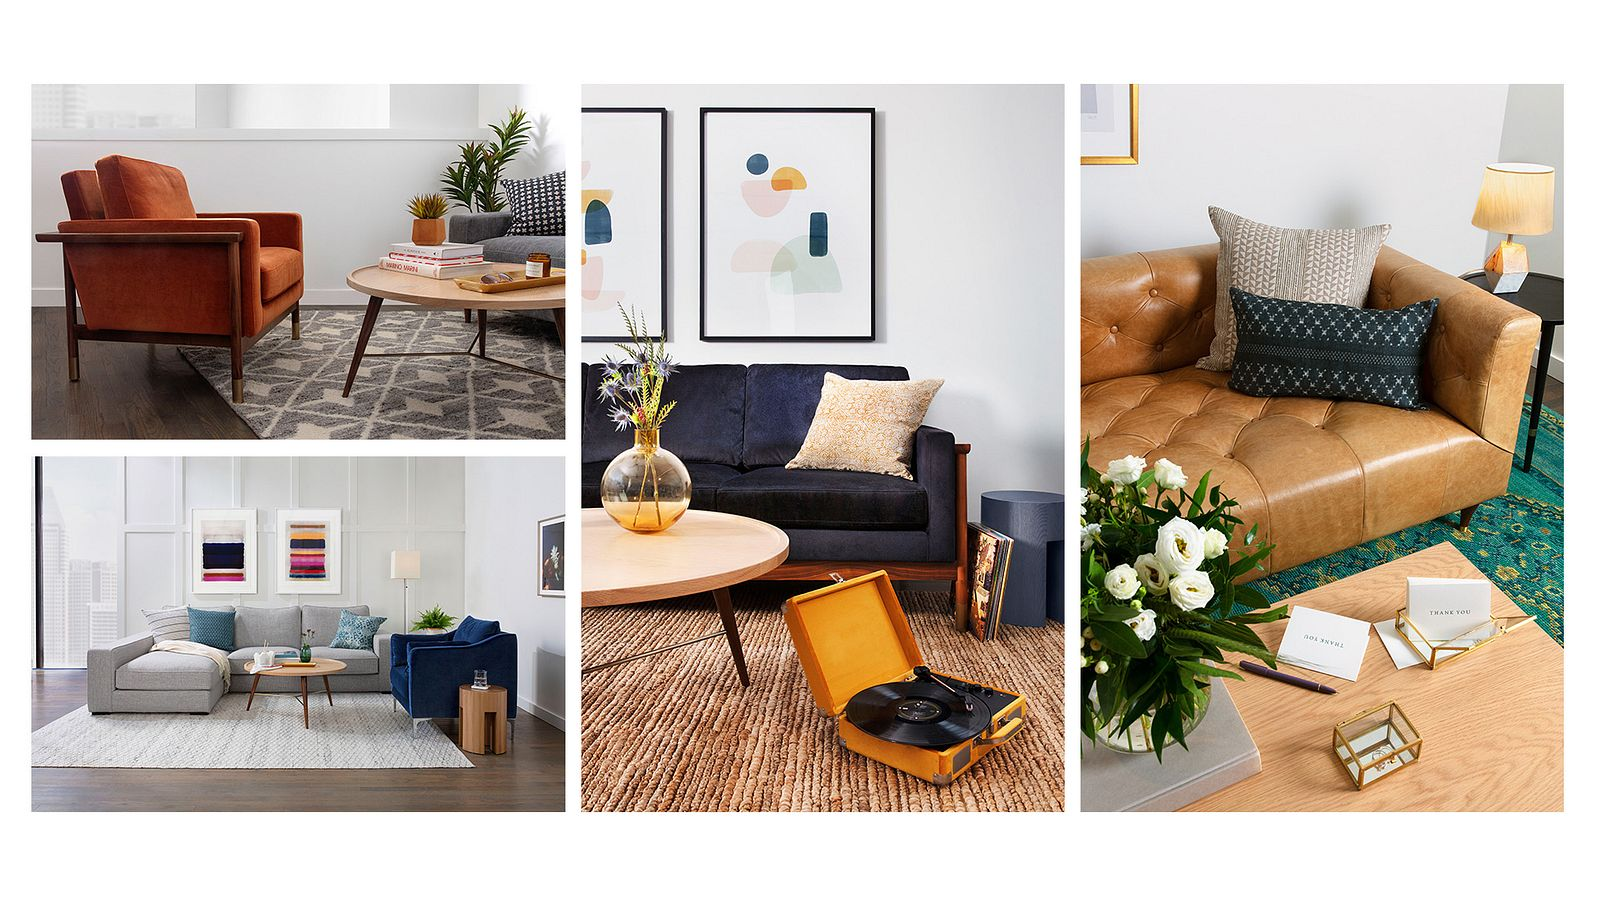 Composite image of product photography. Four.Unique living room setups are defined by accents of character.